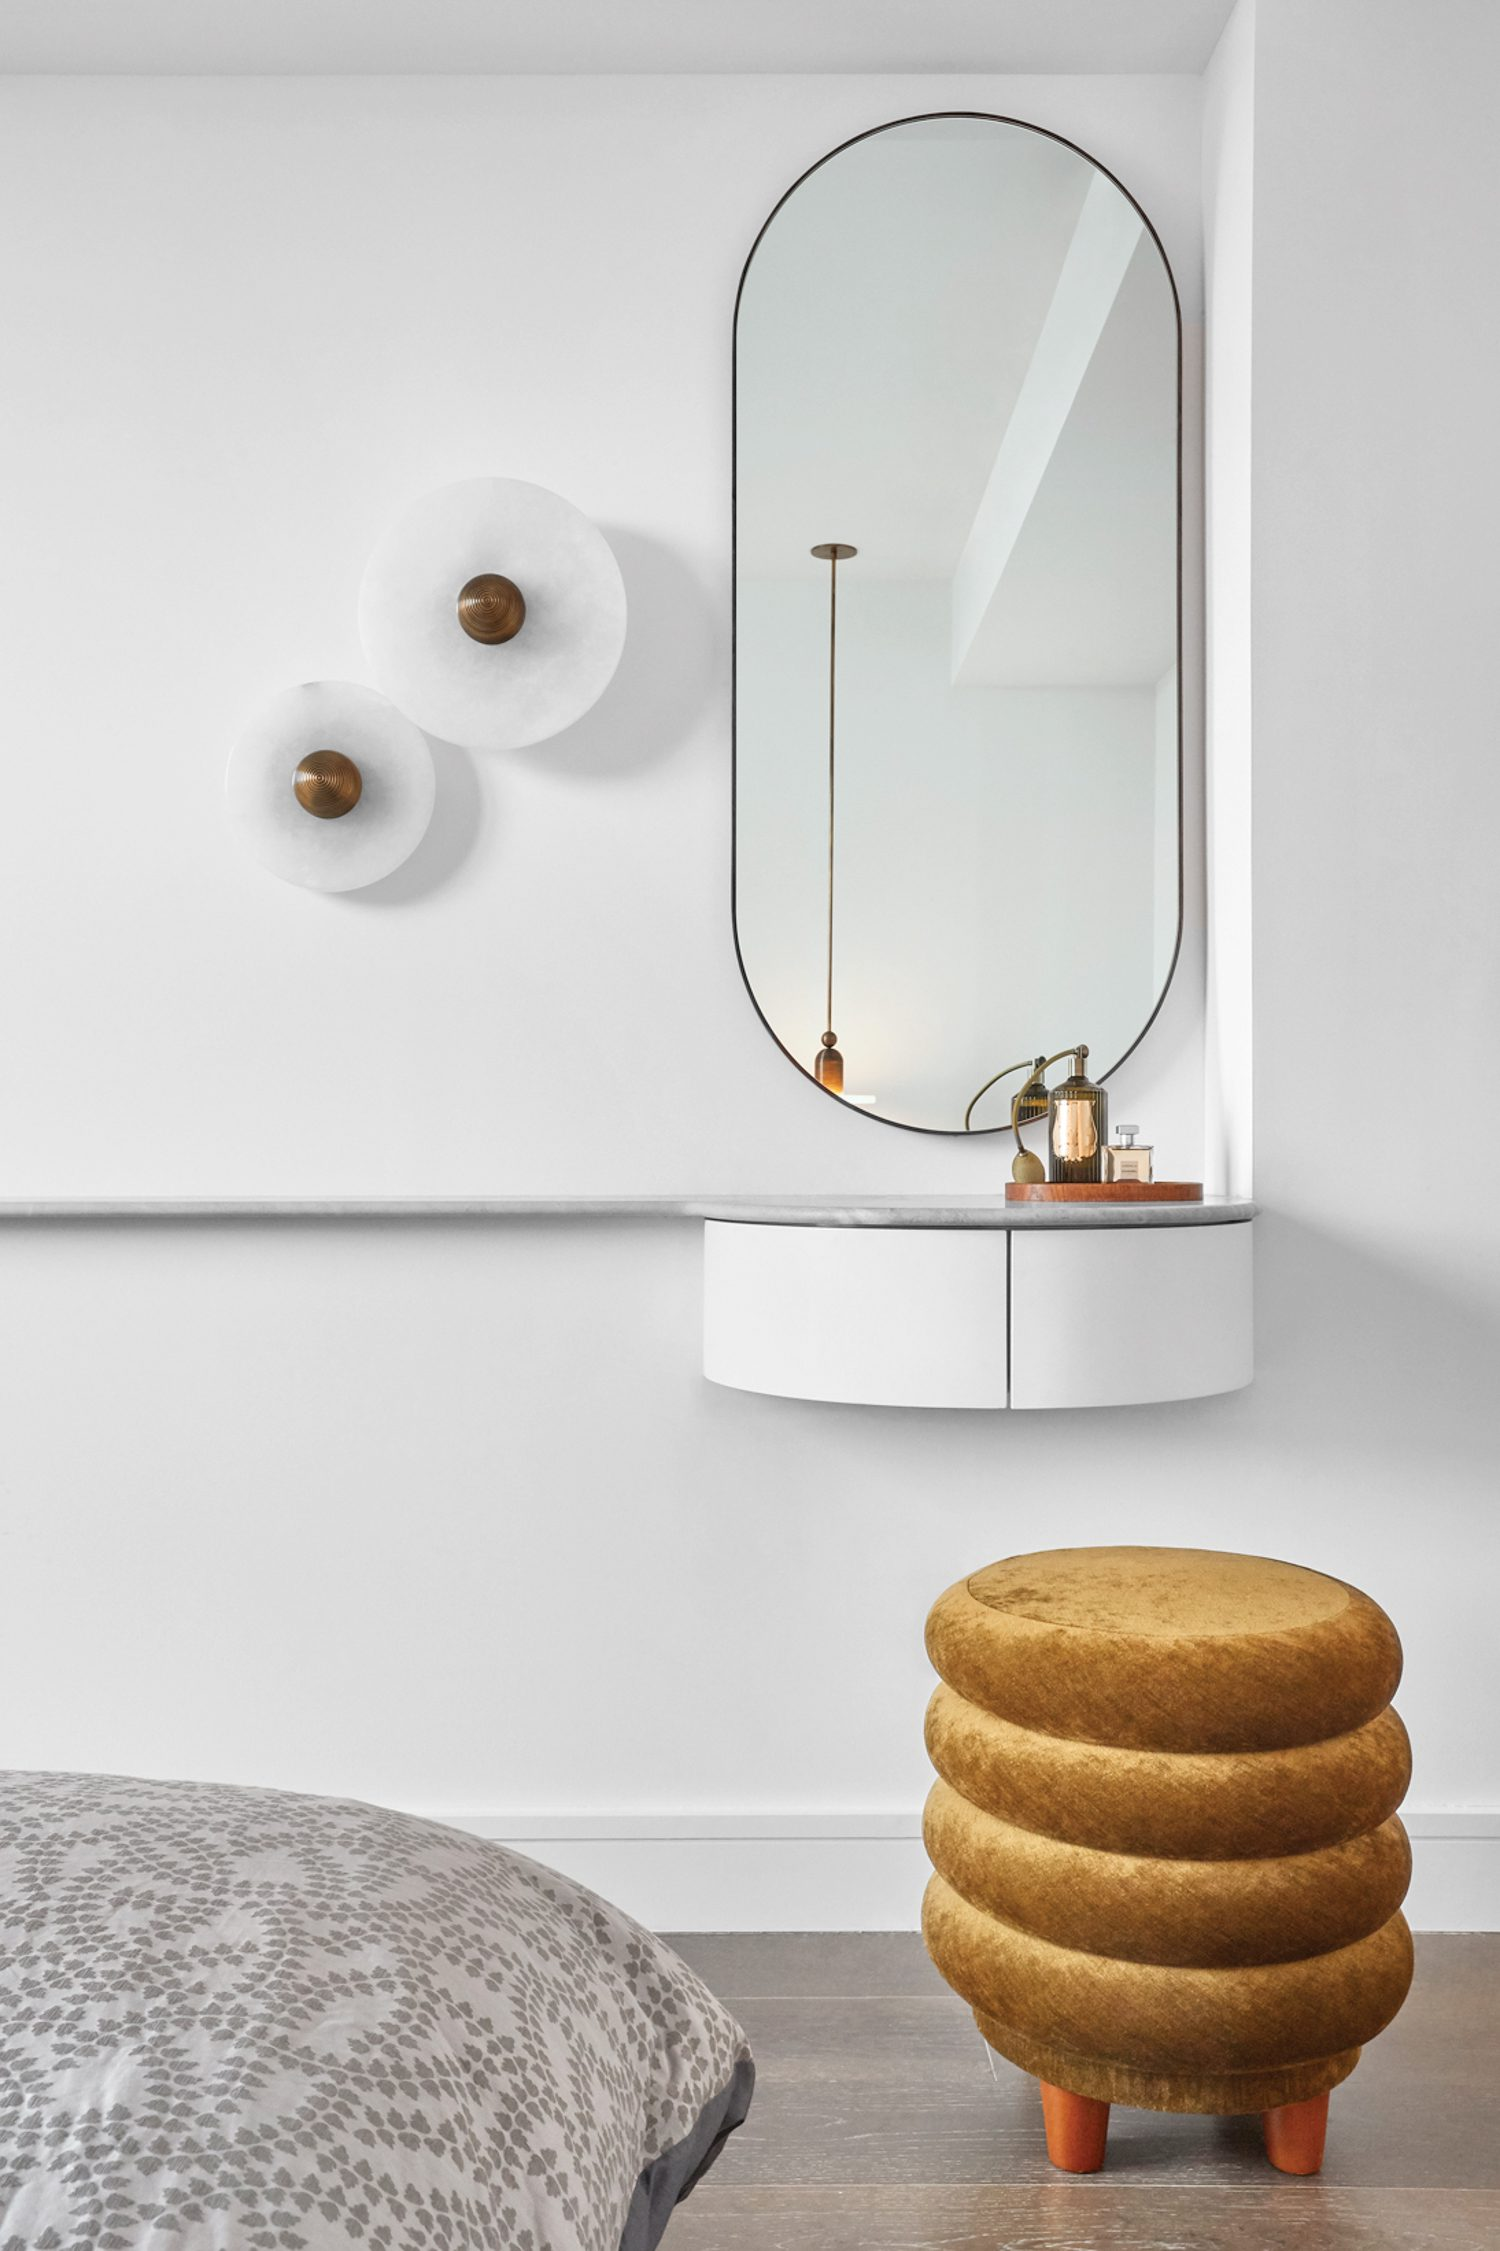 Apparatus Studio's Median sconces and a Capsule mirror by Bower Studios furnish the primary suite's vanity area.